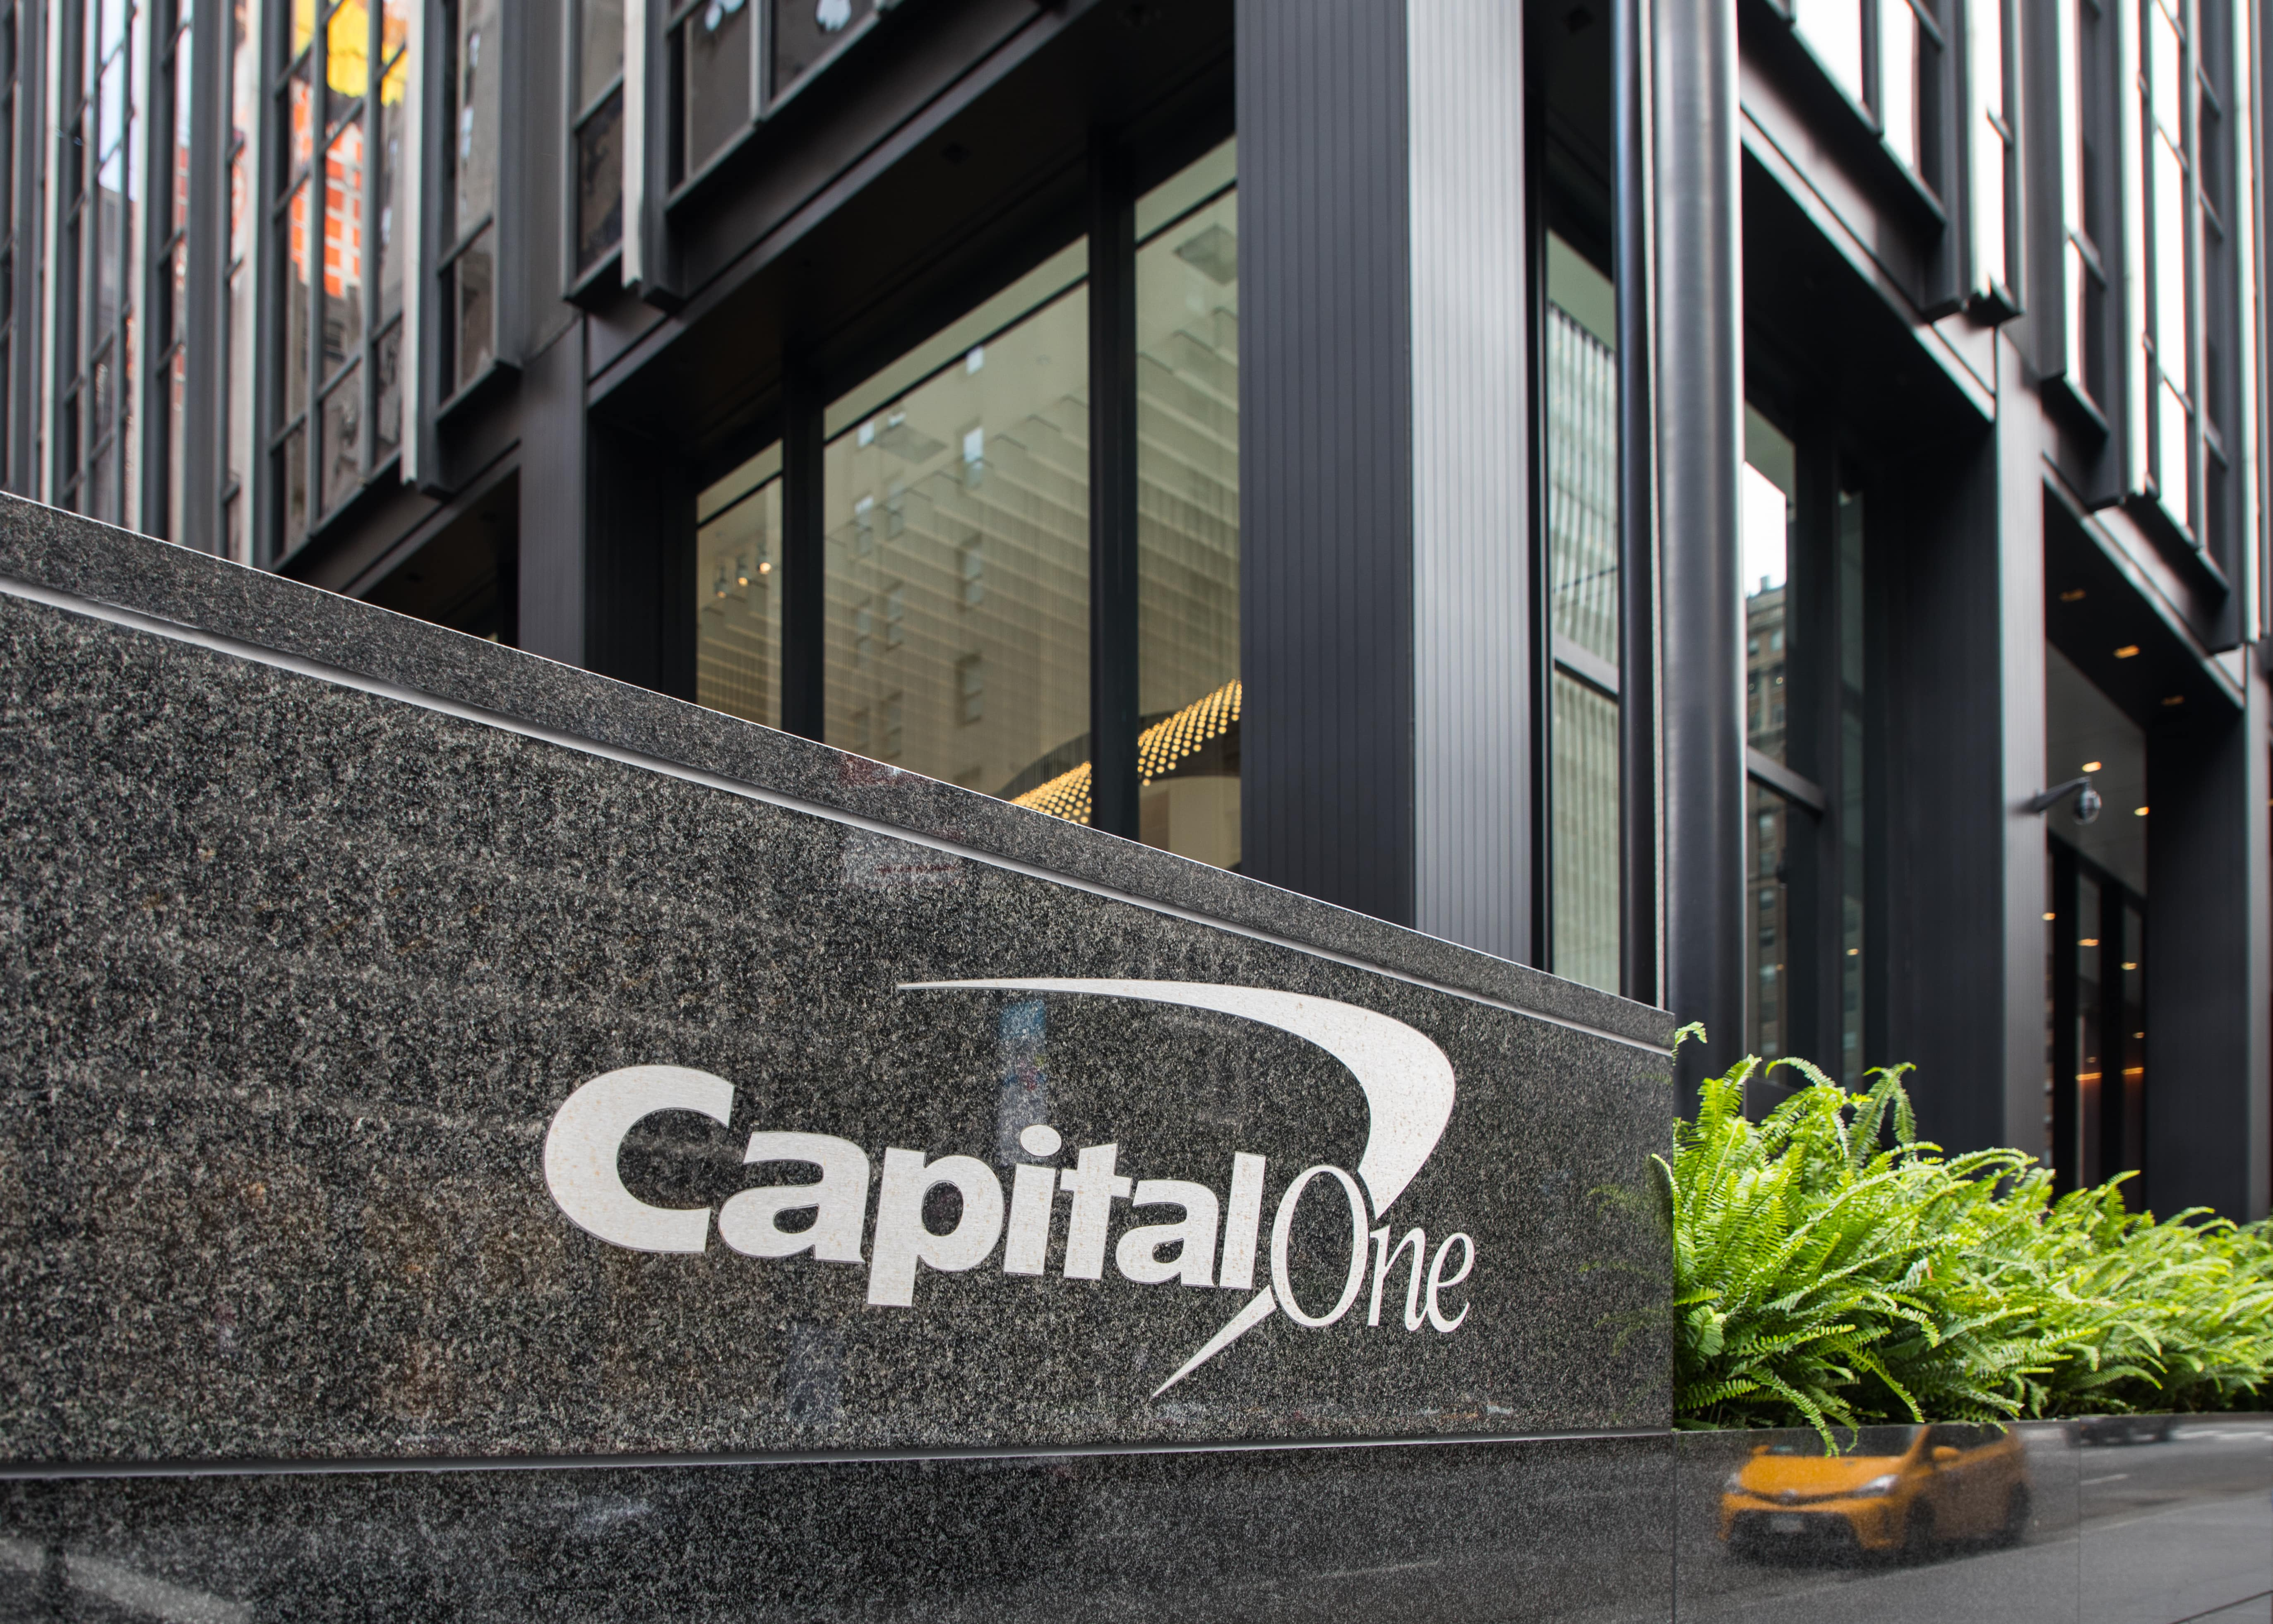 capital-one-data-breach-raises-questions-over-tech-companies-security